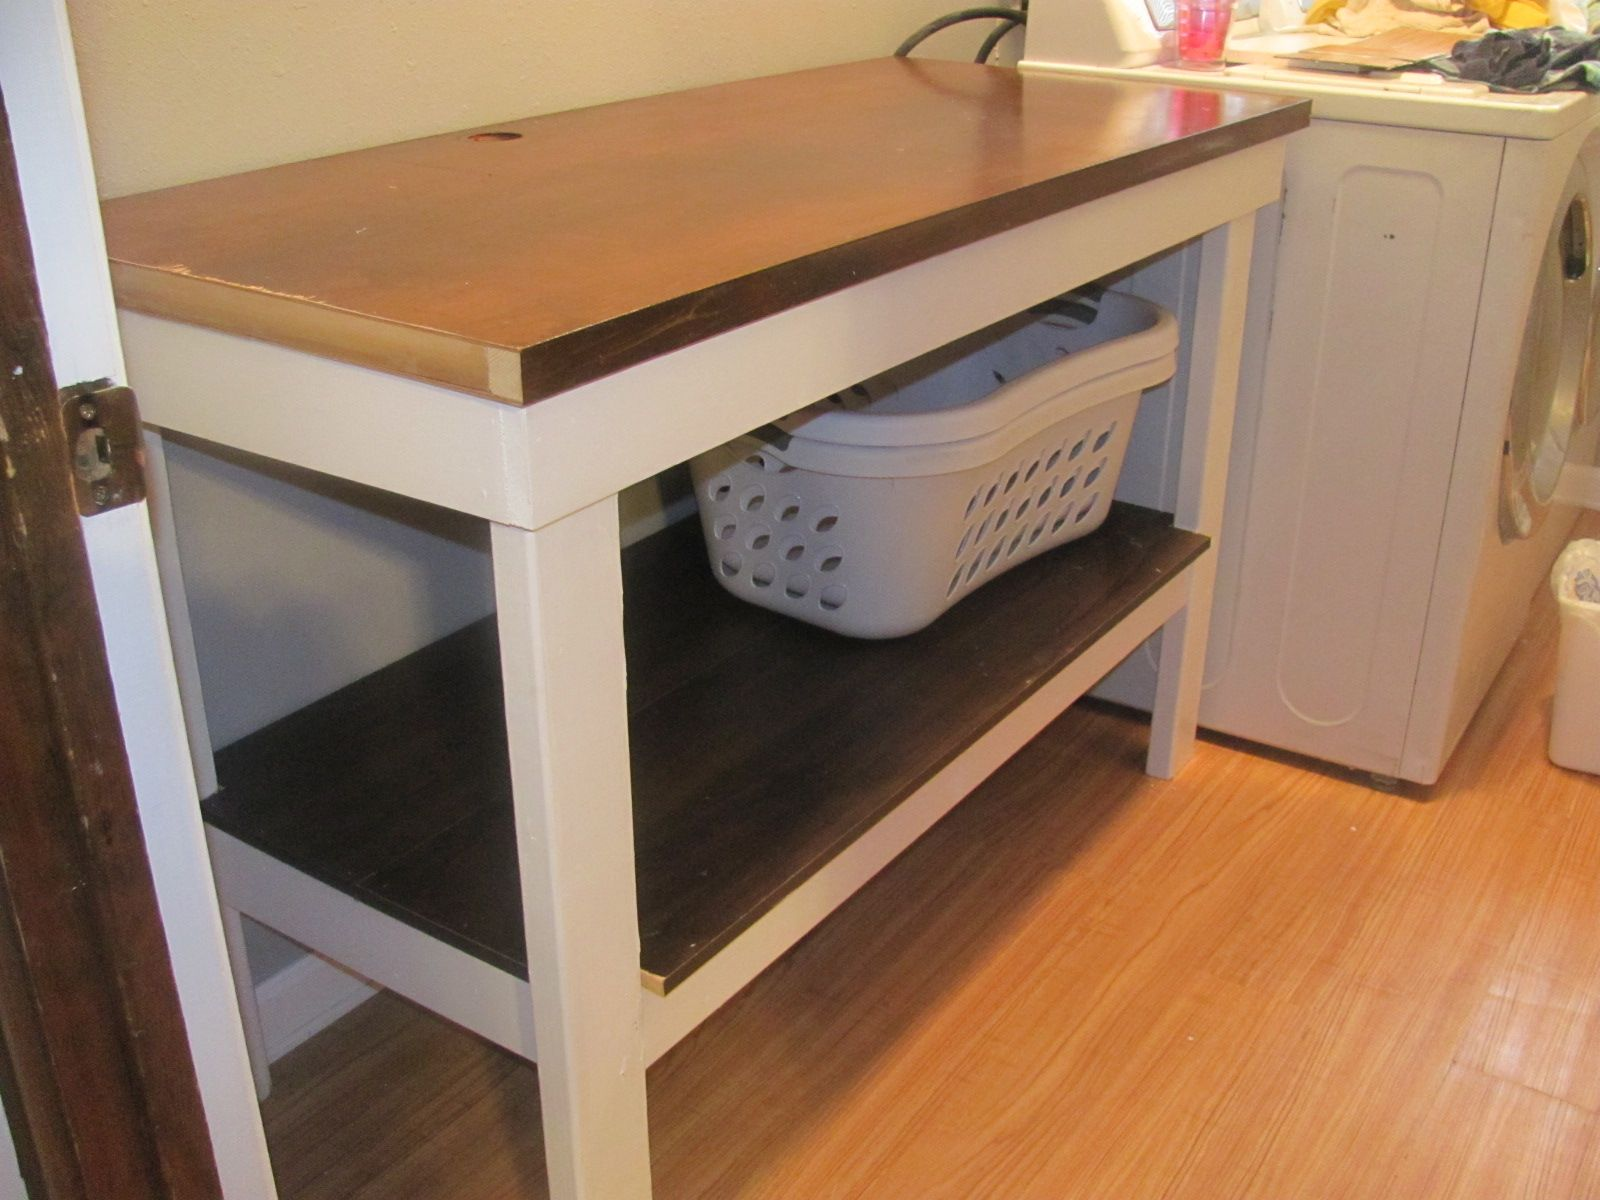 Laundry Room Table Laundry Room Tables Laundry Room Folding Table Laundry Room Diy